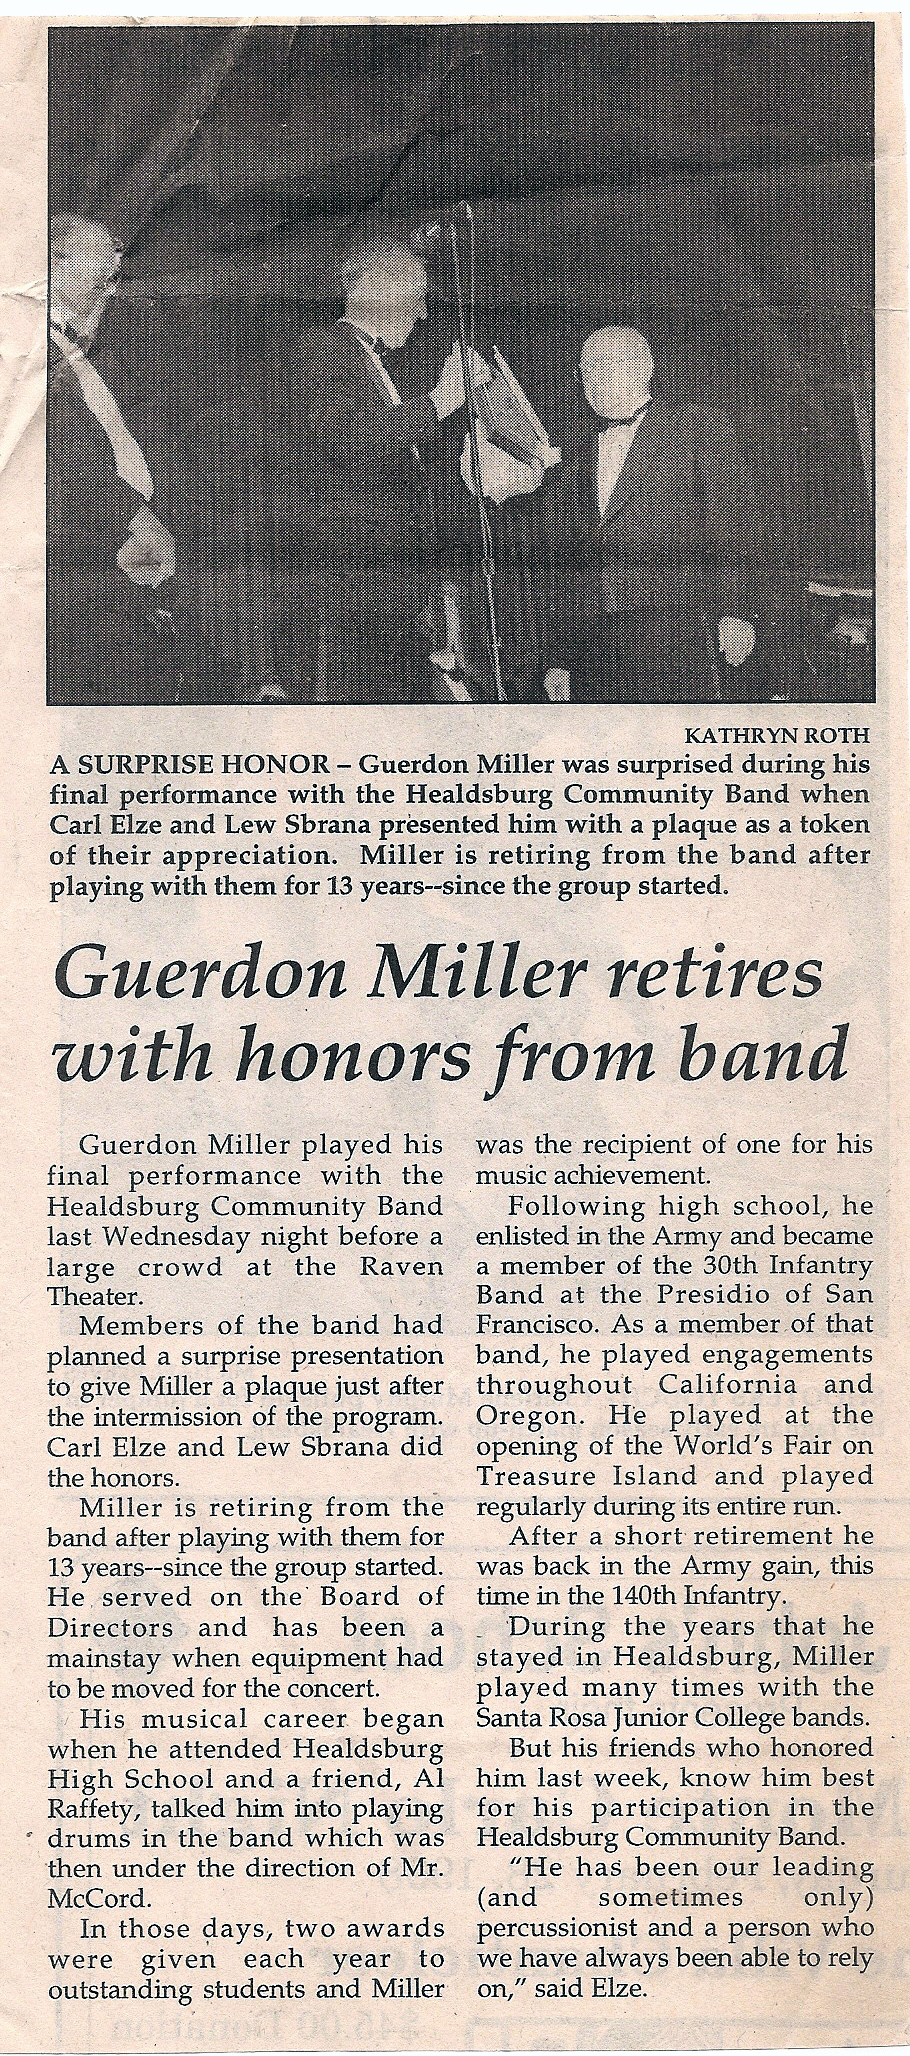 Guerdon Miller retires with honors from band